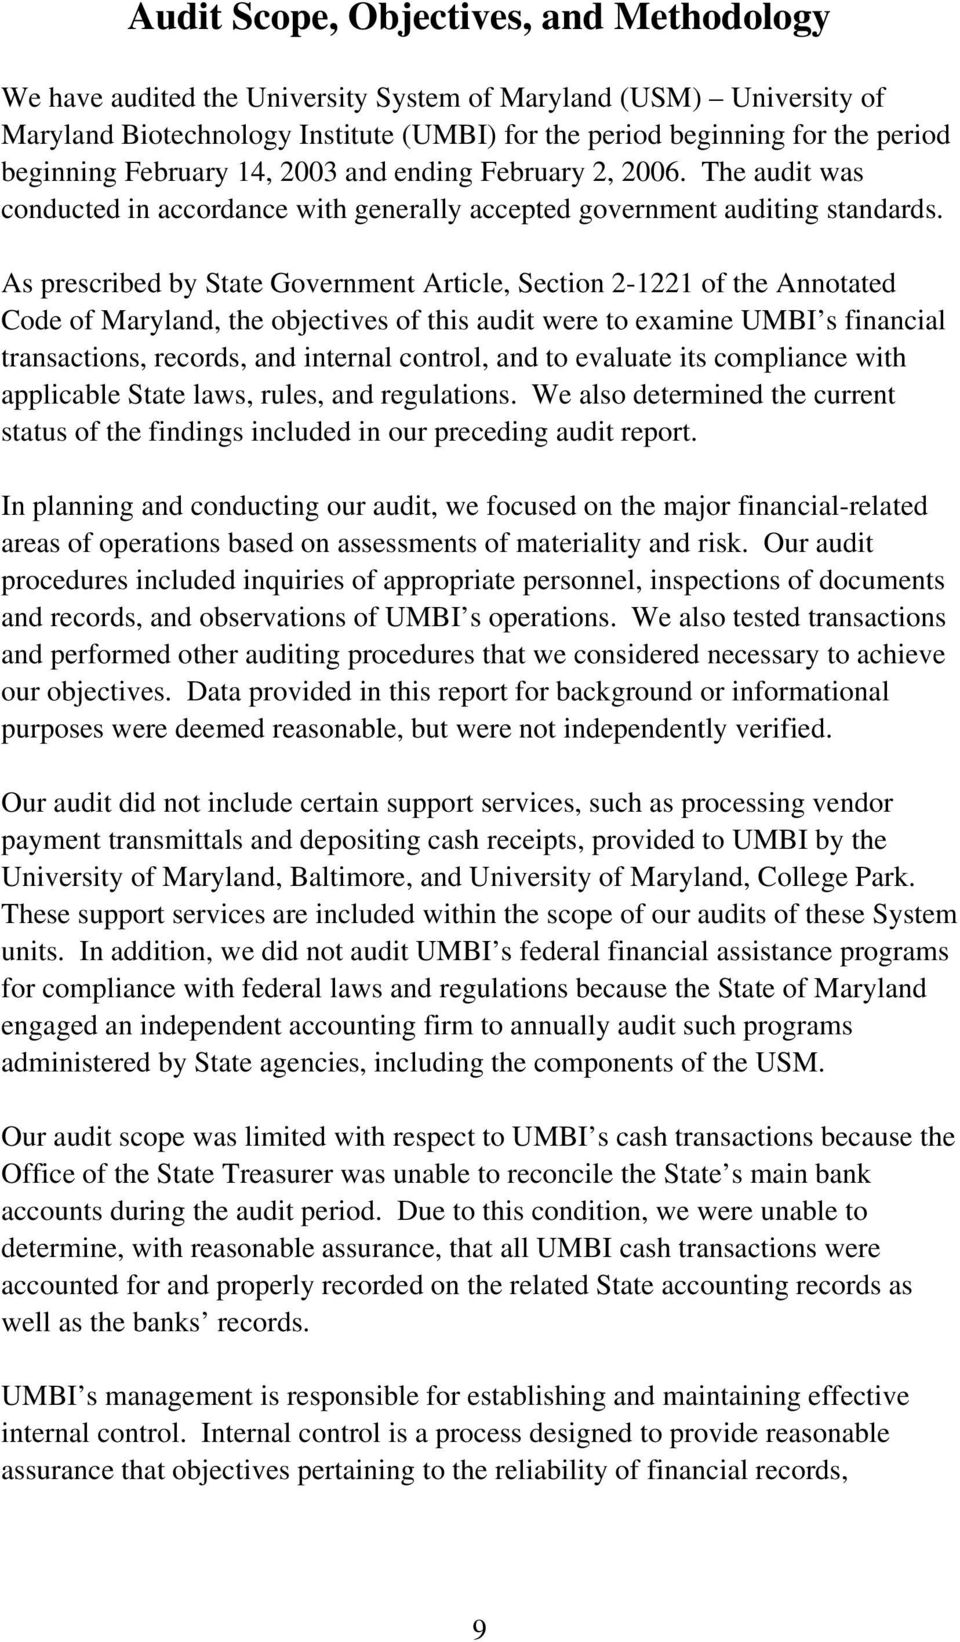 As prescribed by State Government Article, Section 2-1221 of the Annotated Code of Maryland, the objectives of this audit were to examine UMBI s financial transactions, records, and internal control,